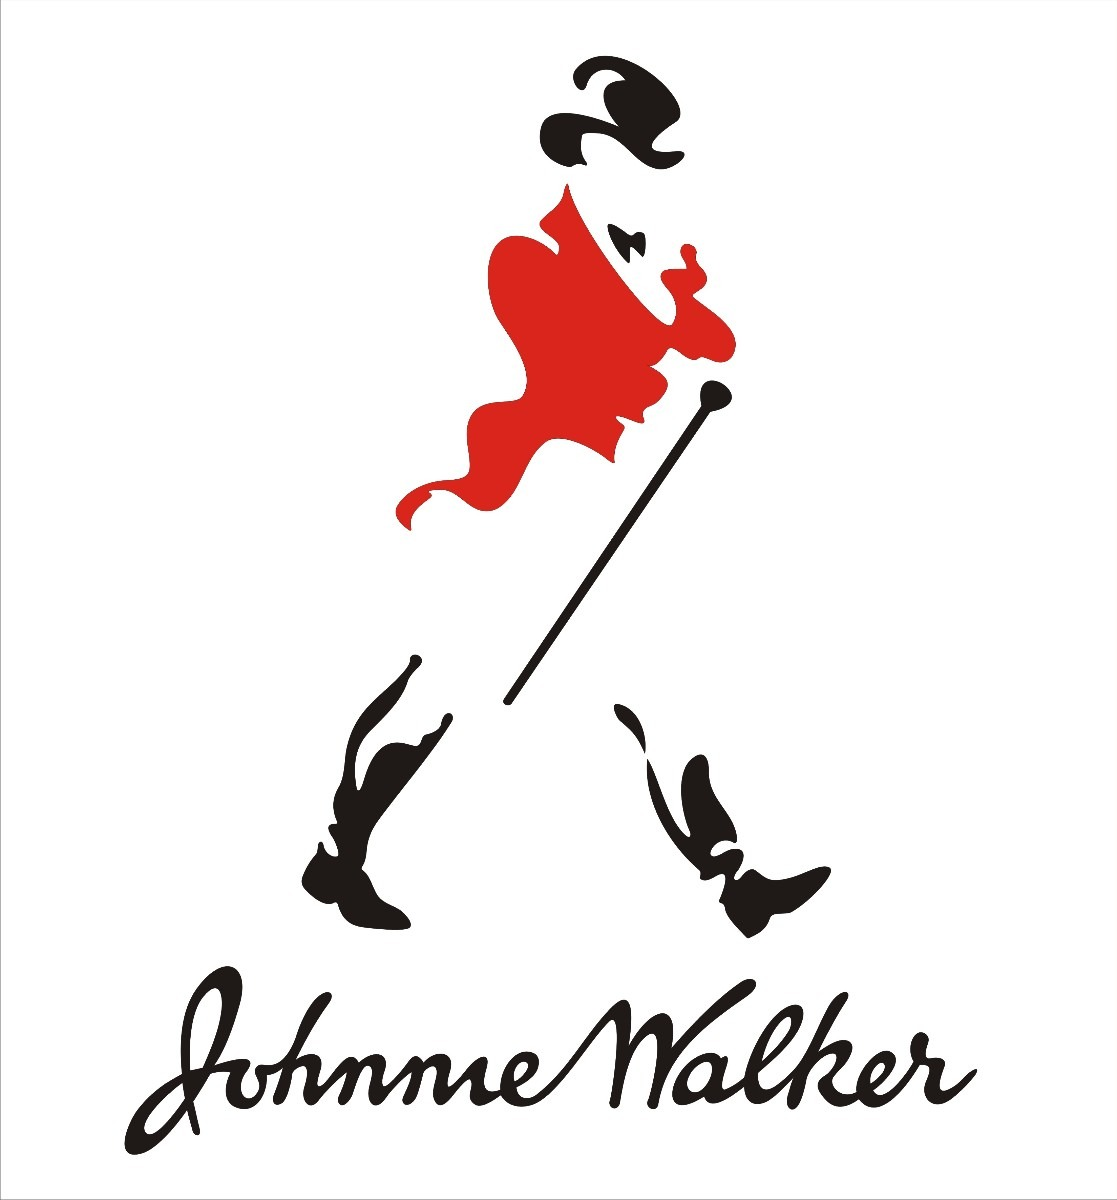 Johnnie Walker.jpeg